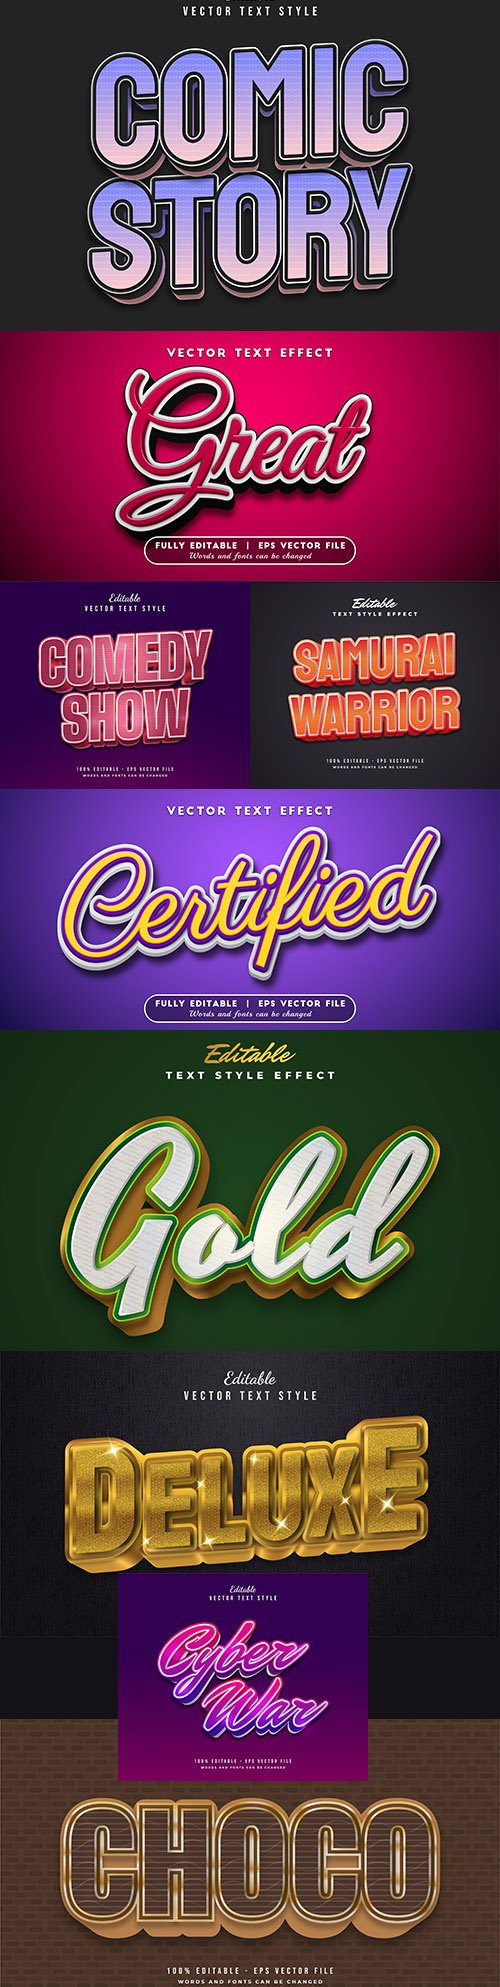 Editable font and 3d effect text design collection illustration 56